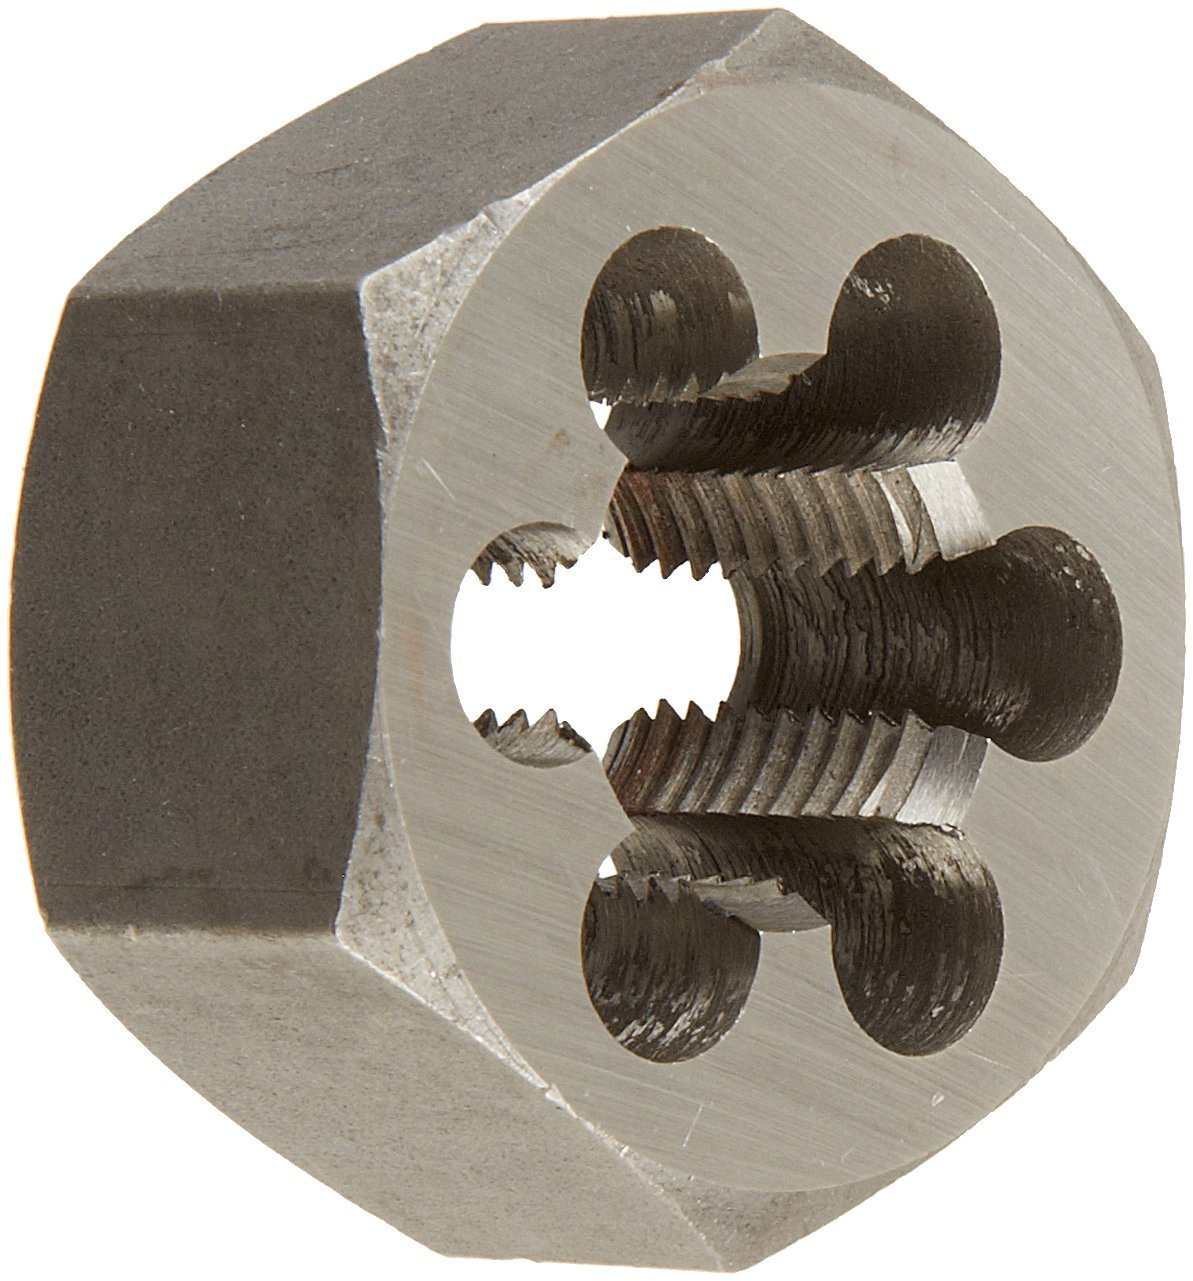 Drill America DWT Series Qualtech Carbon Steel Hex Threading Die, M36 x 1.5 Size (Pack of 1)